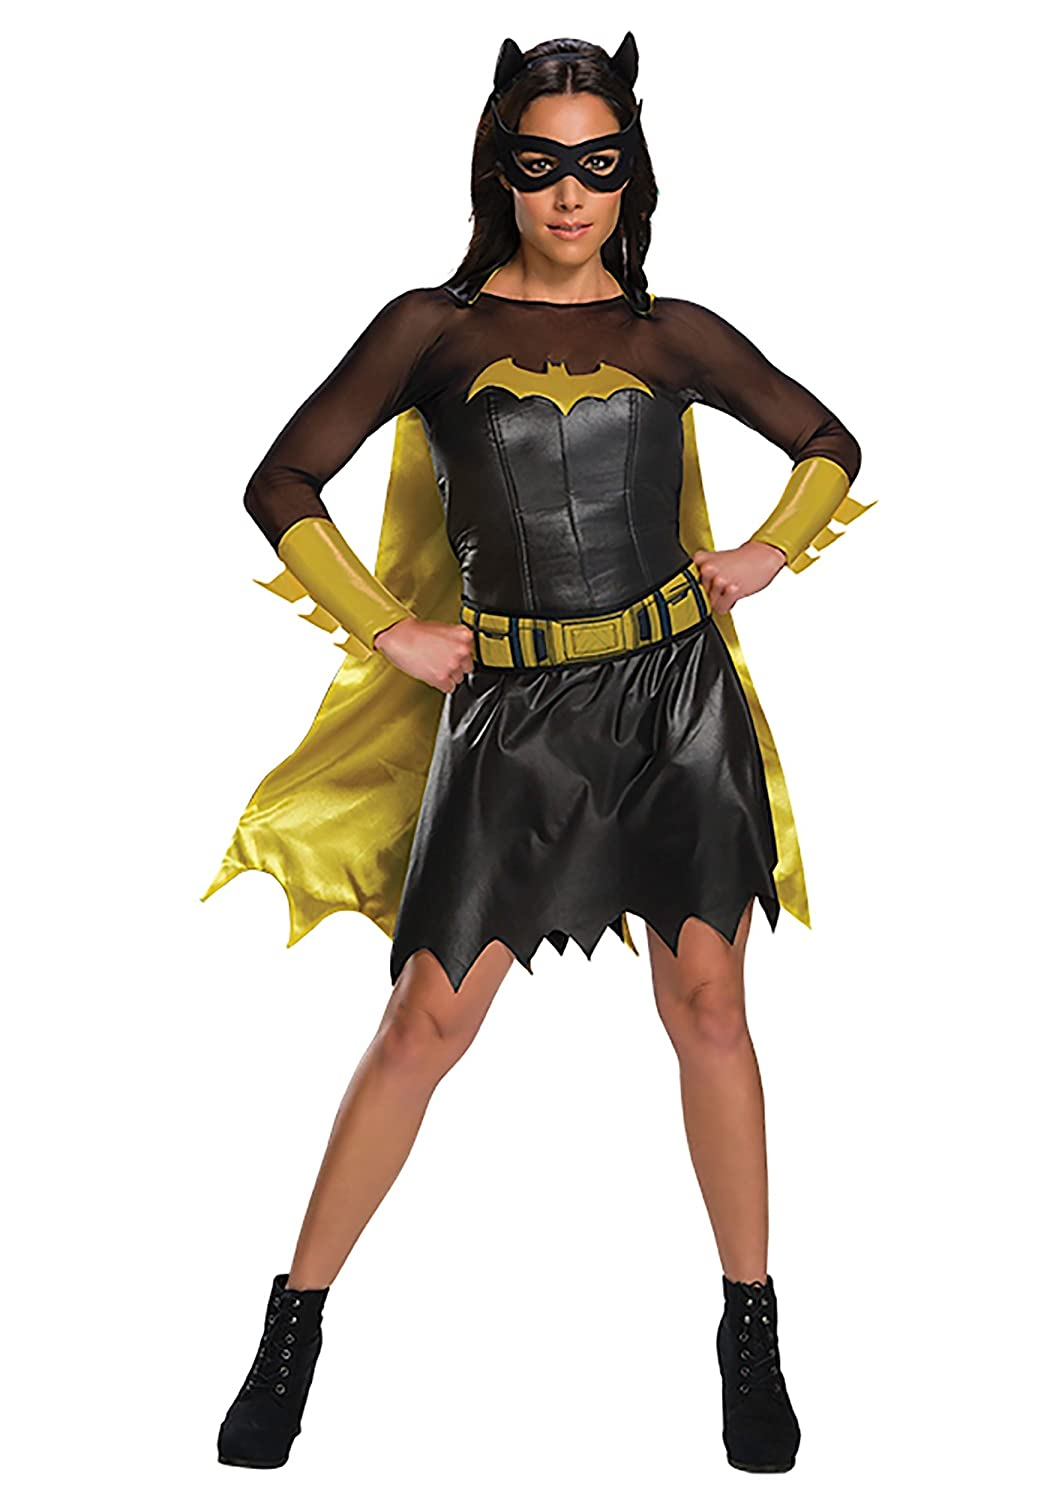 DC Deluxe Women's Batgirl Fancy dress costume Small